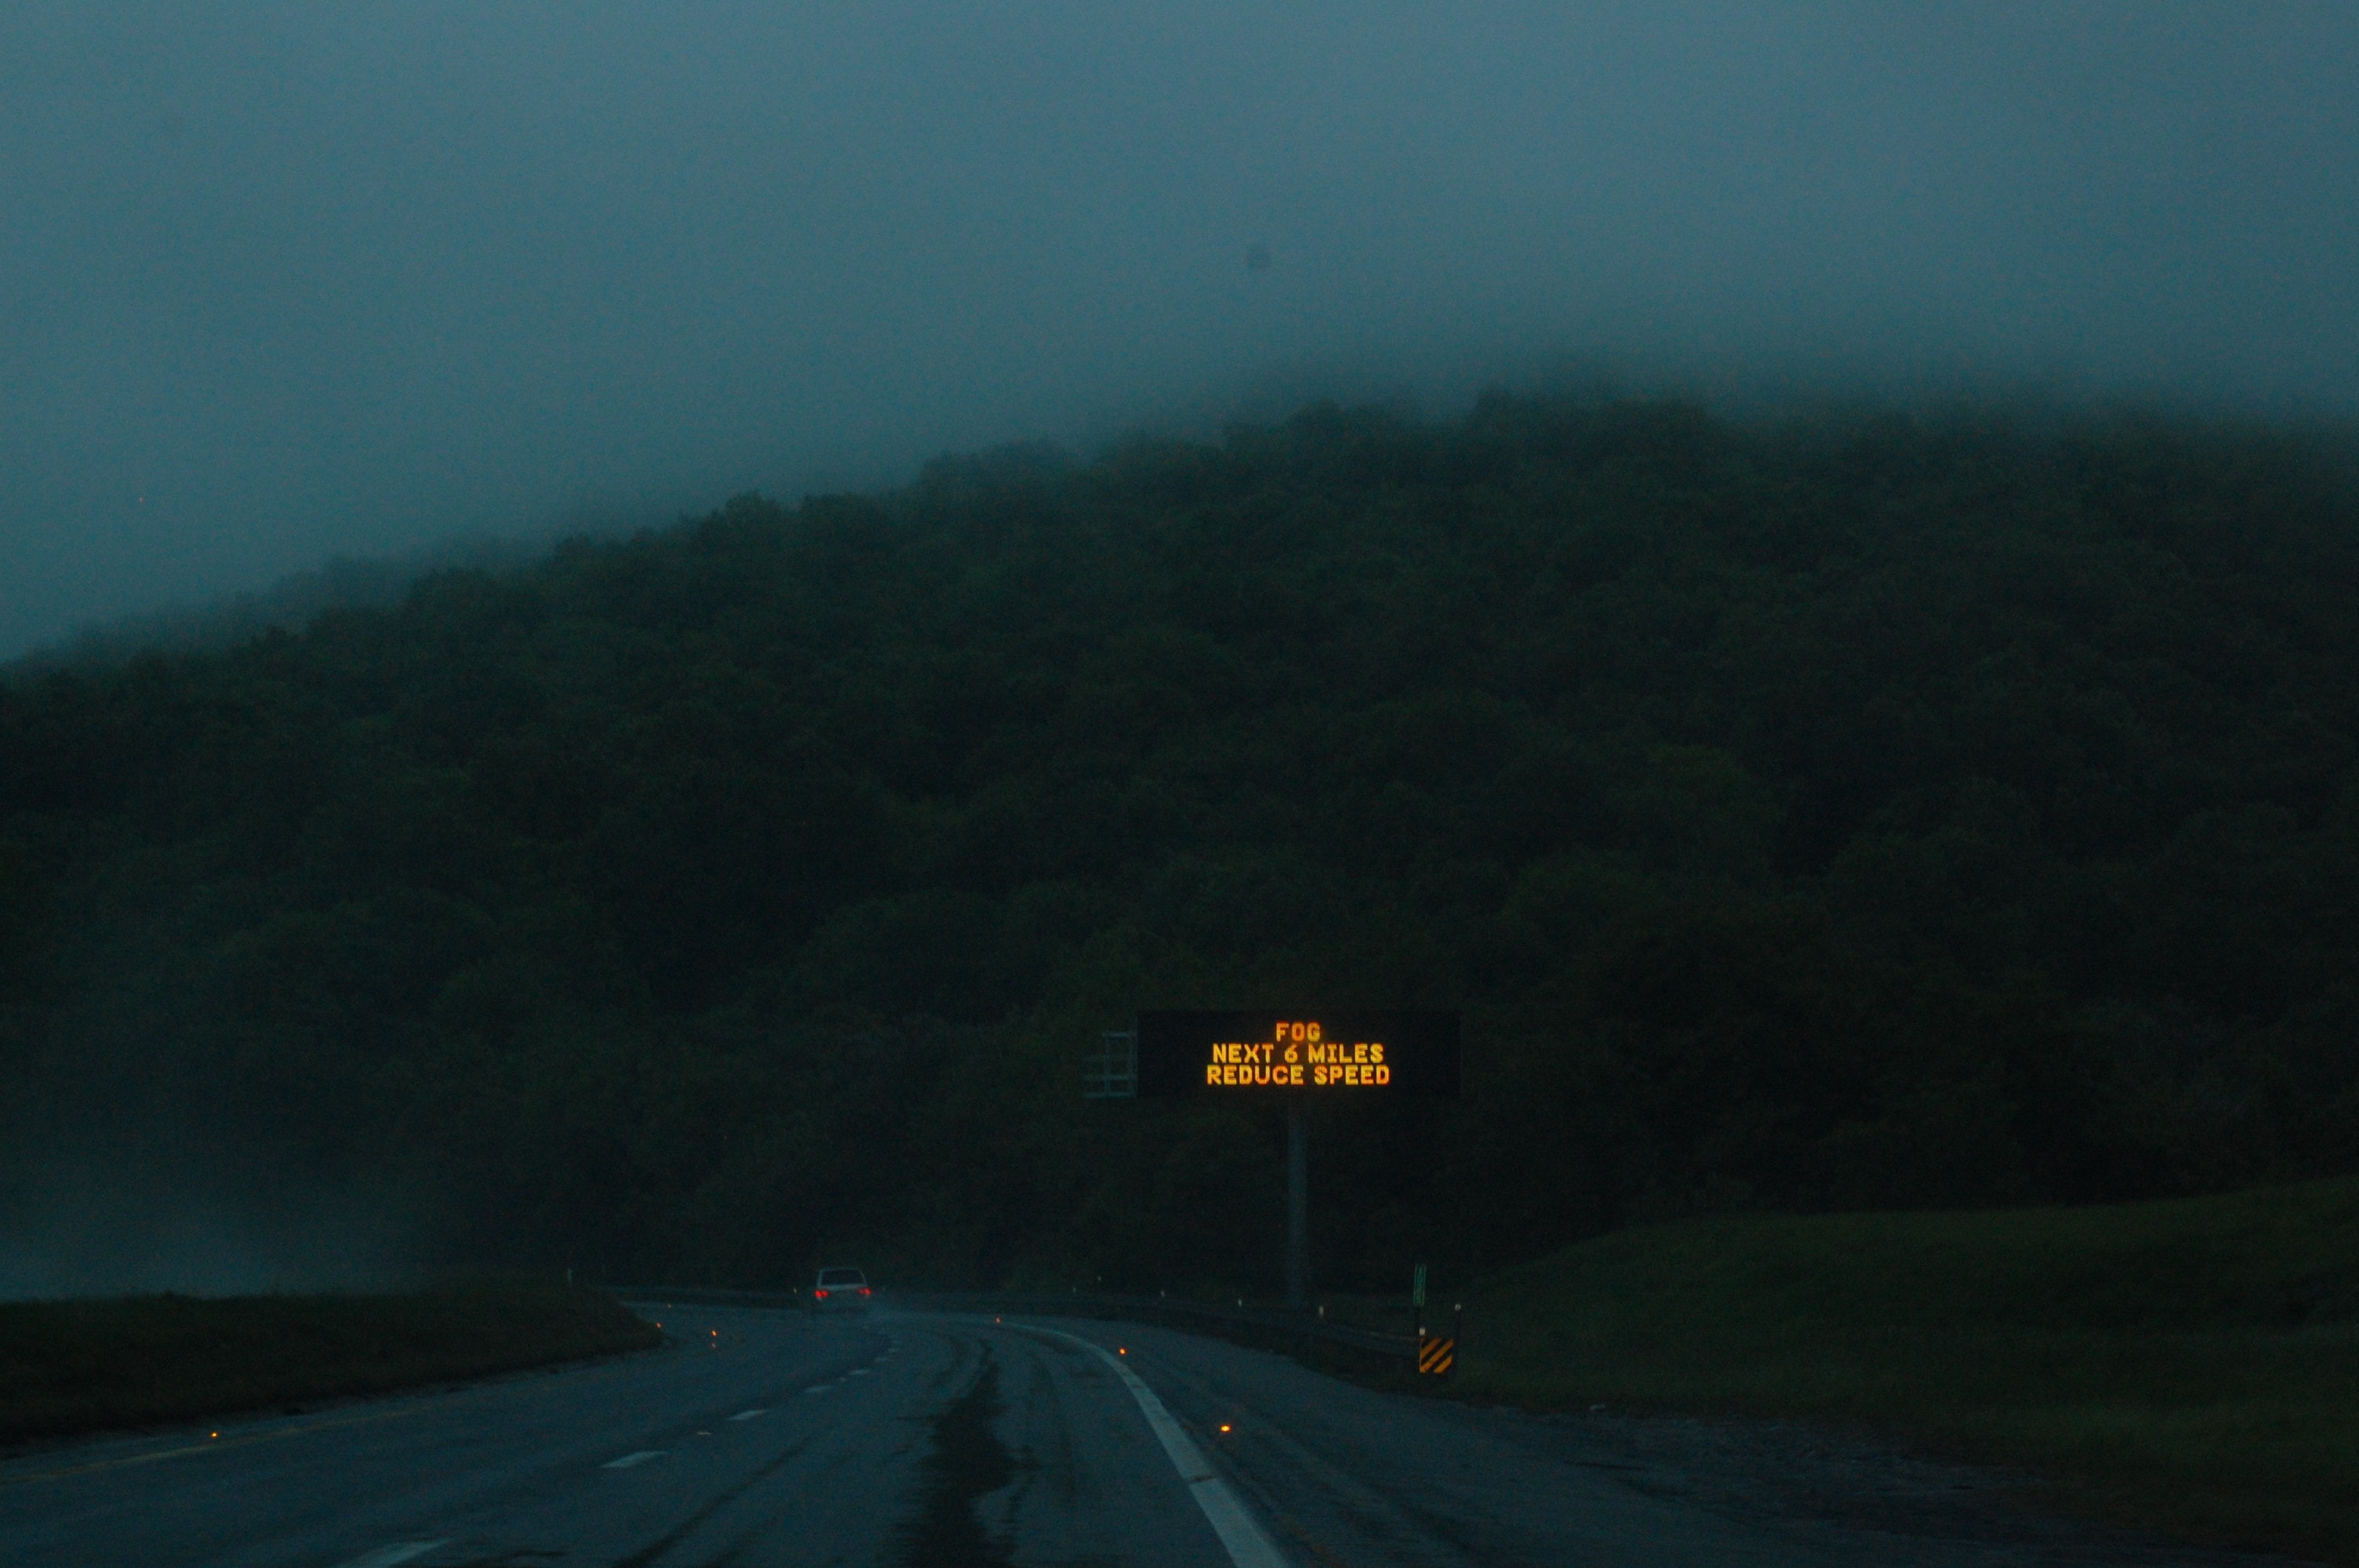 Highway sign warns drivers of fog on the road at night